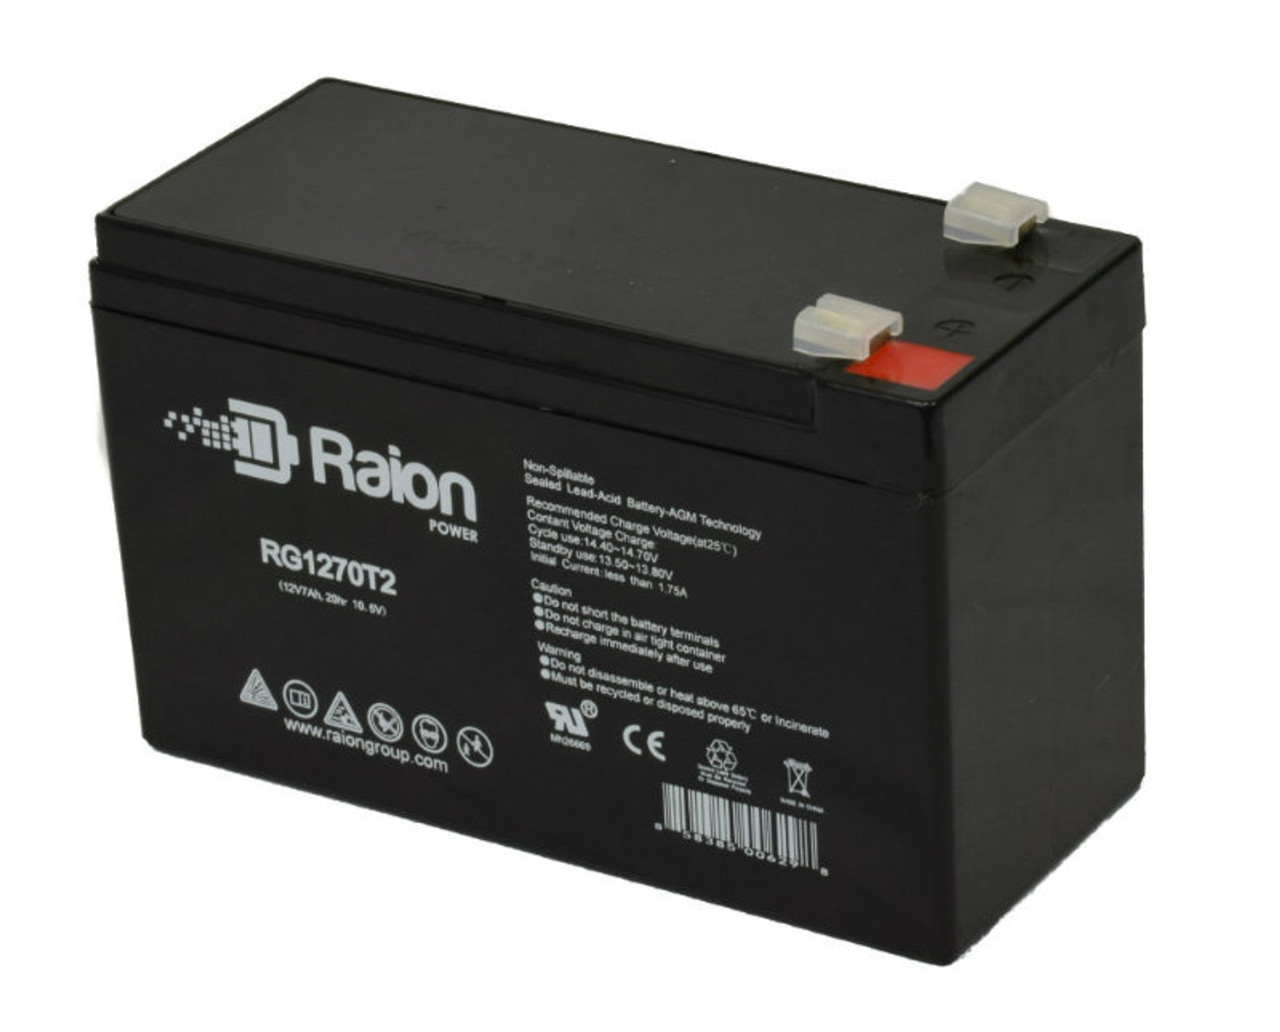 Raion Power RG1270T1 Replacement Battery for Power Patrol SLA1075